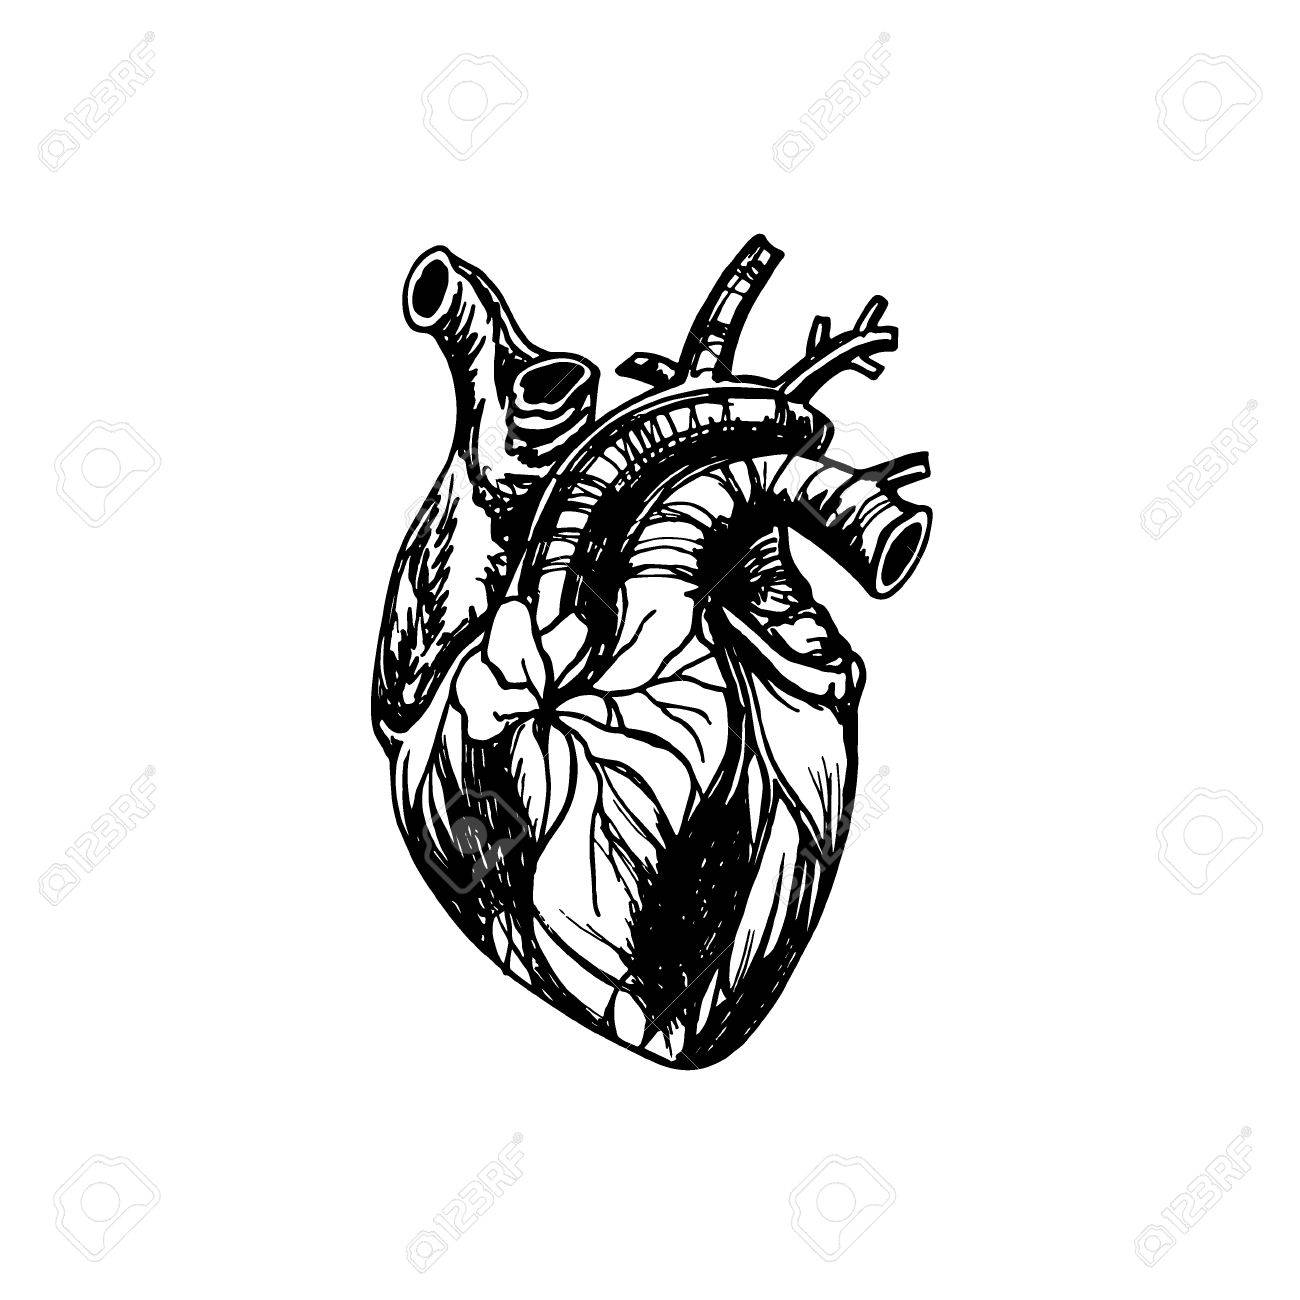 Vector Illustration Of Human Heart Anatomy Drawing Made In Graphic